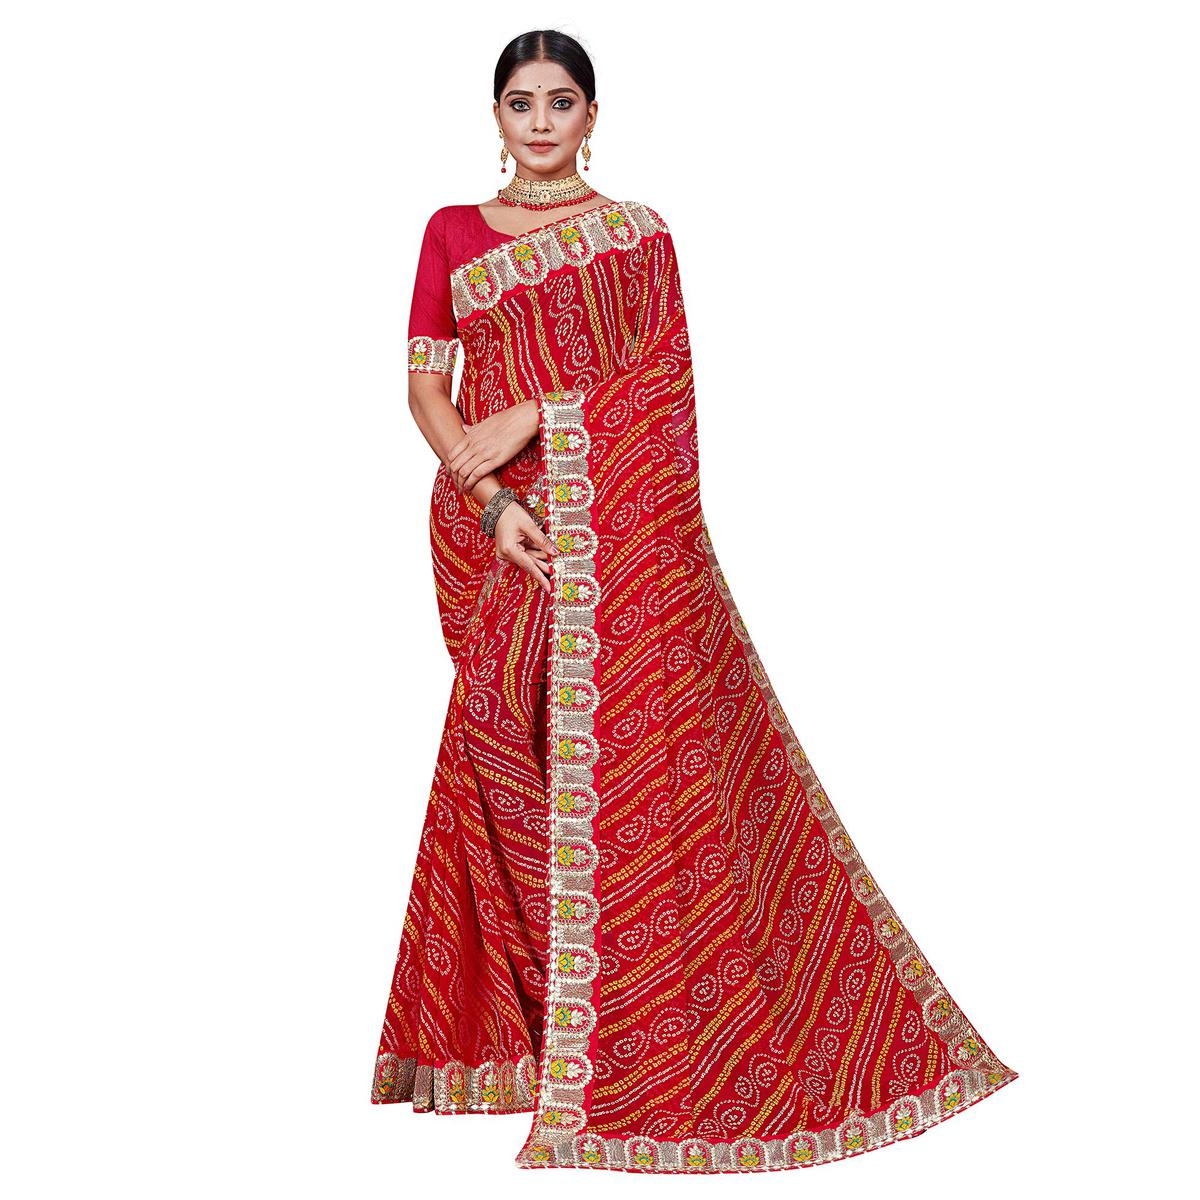 Red Festive Wear Bandhani Printed Georgette Saree With Gotta Patti Lace